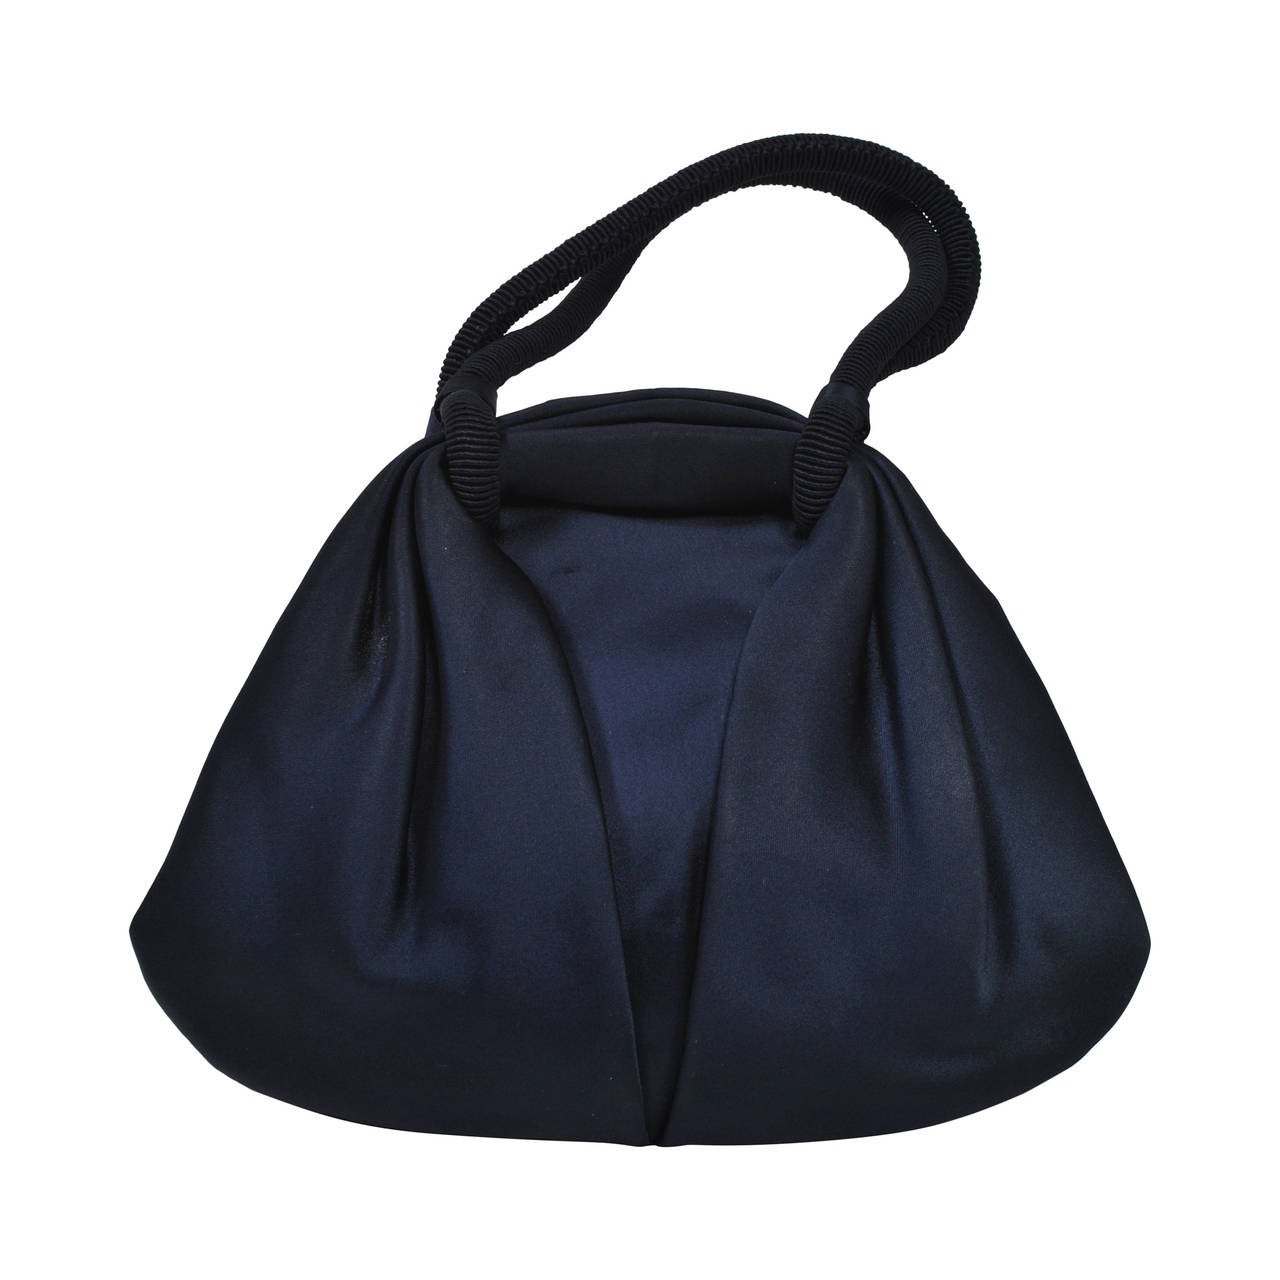 Navy Satin Purse with Tortoise Kiss Clasp, Paris 1